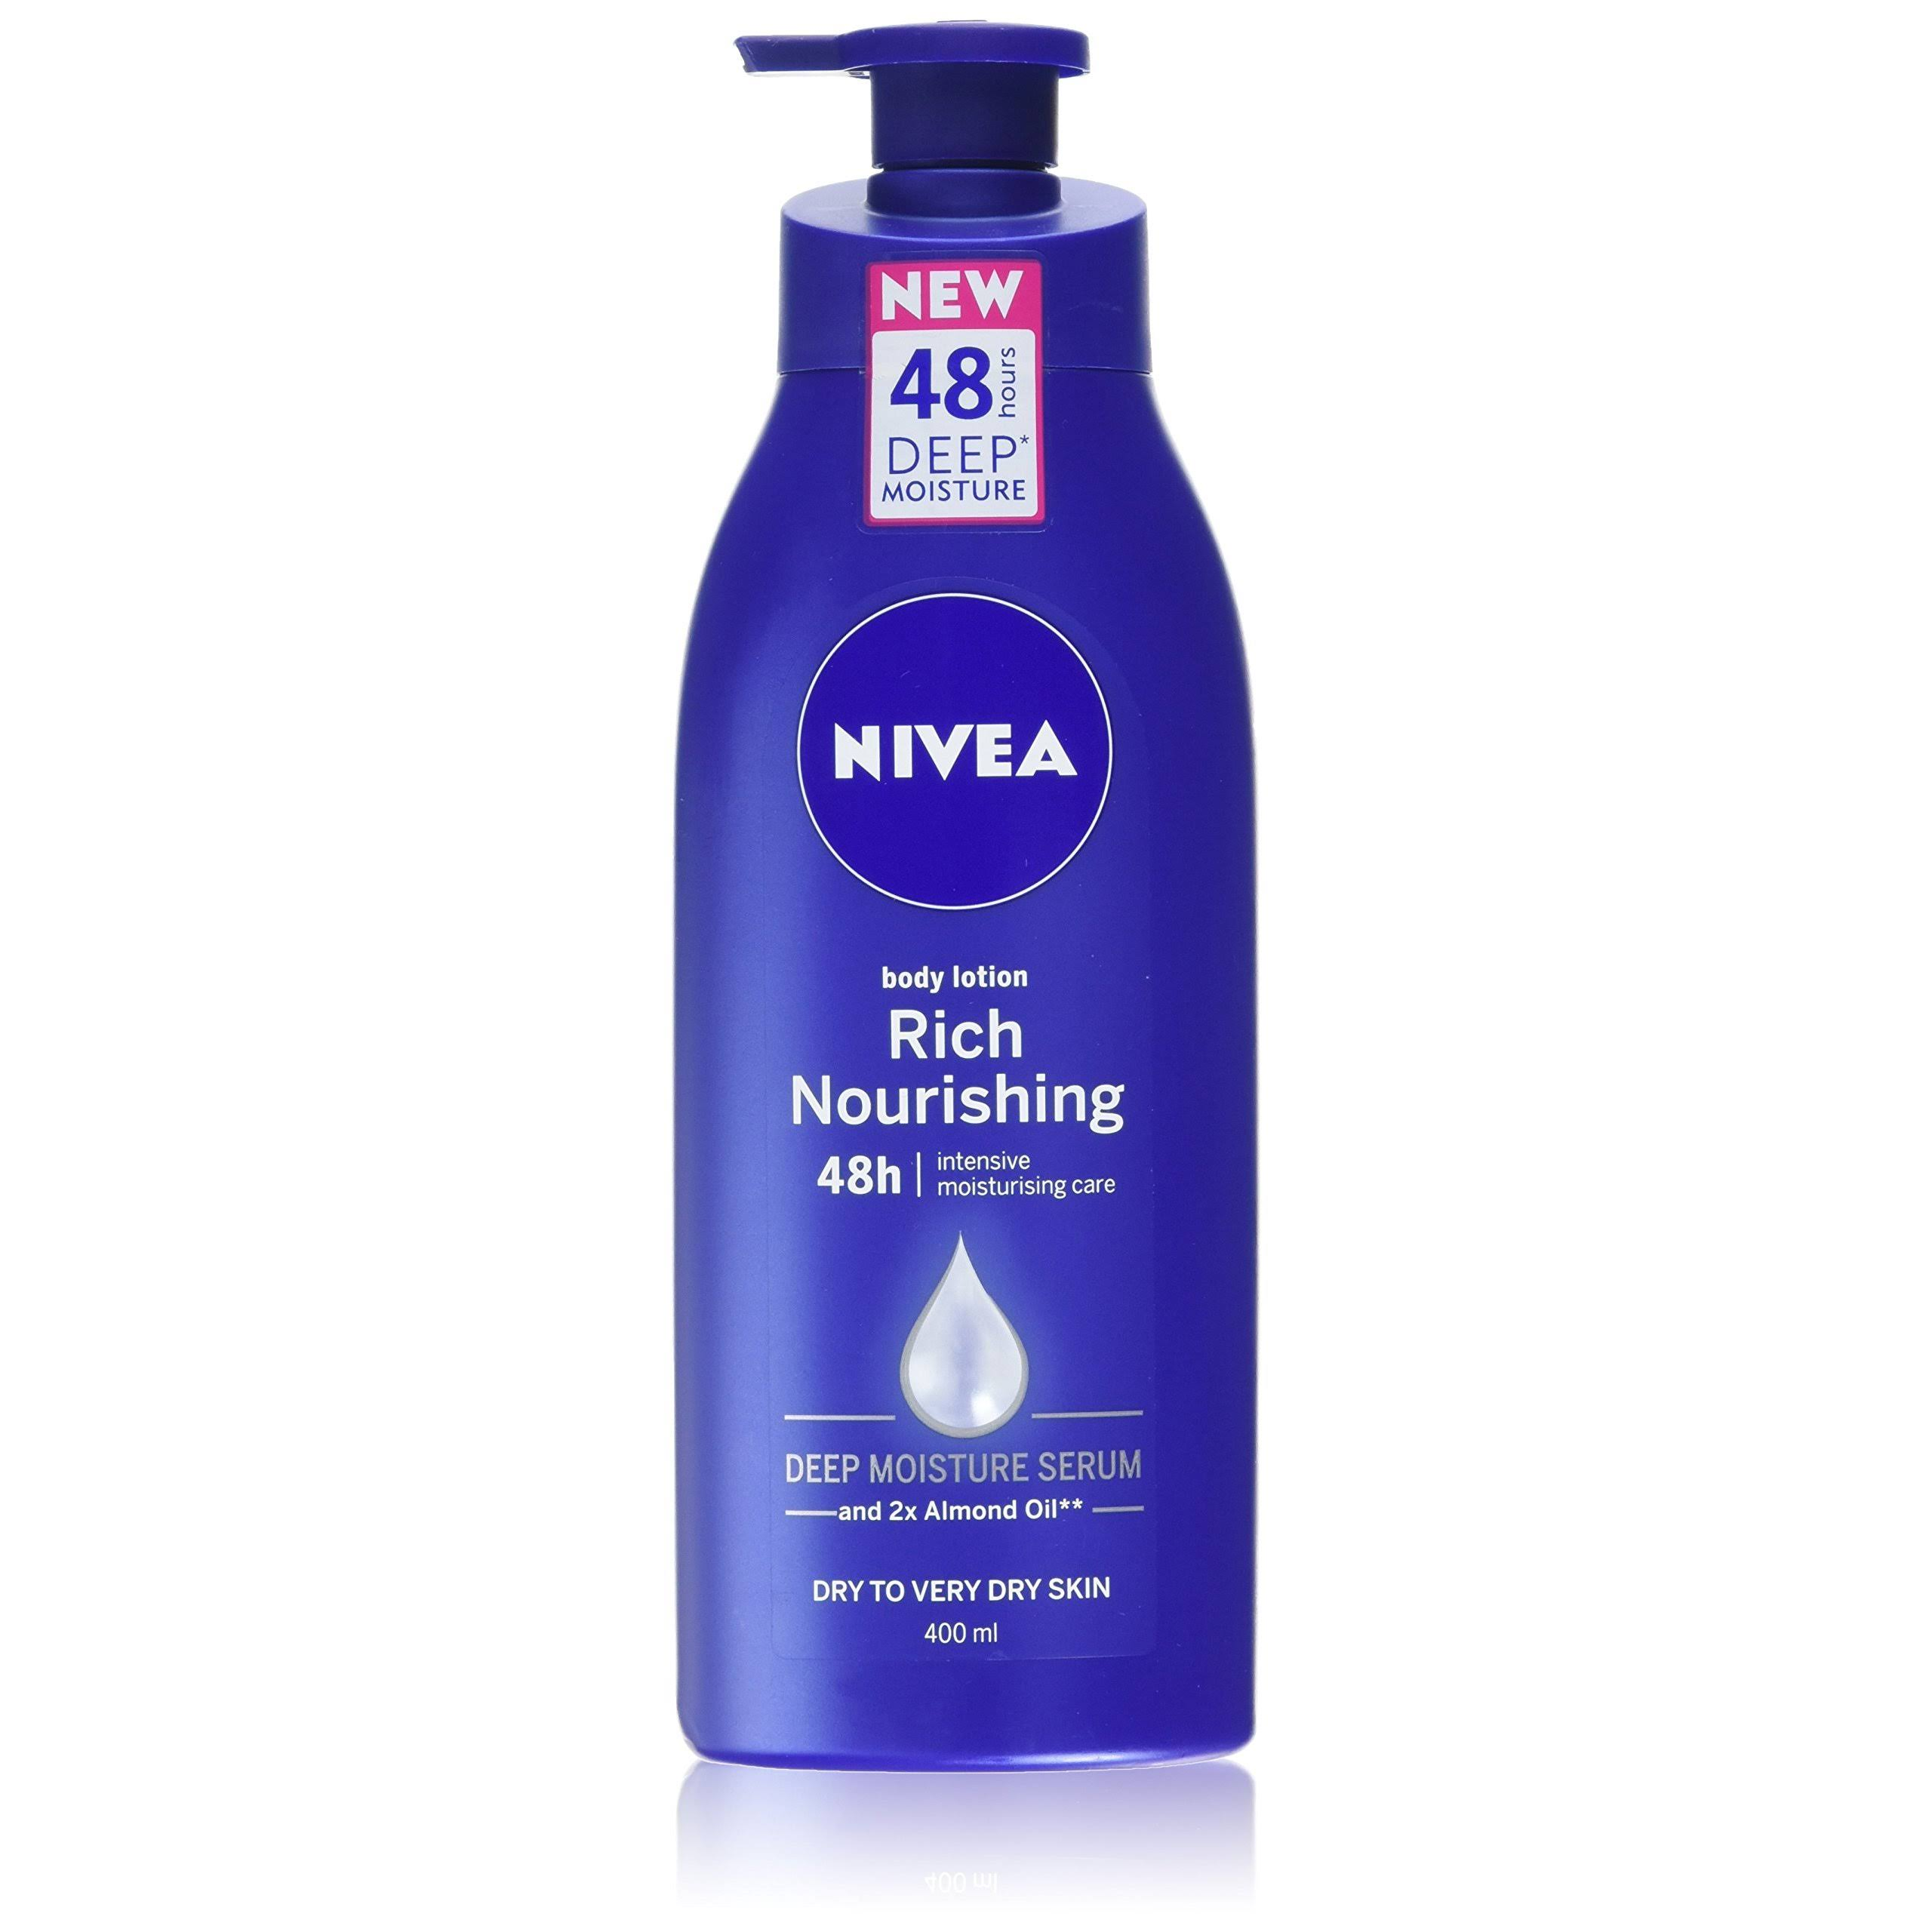 Nivea Rich Nourishing Body Lotion - 400ml